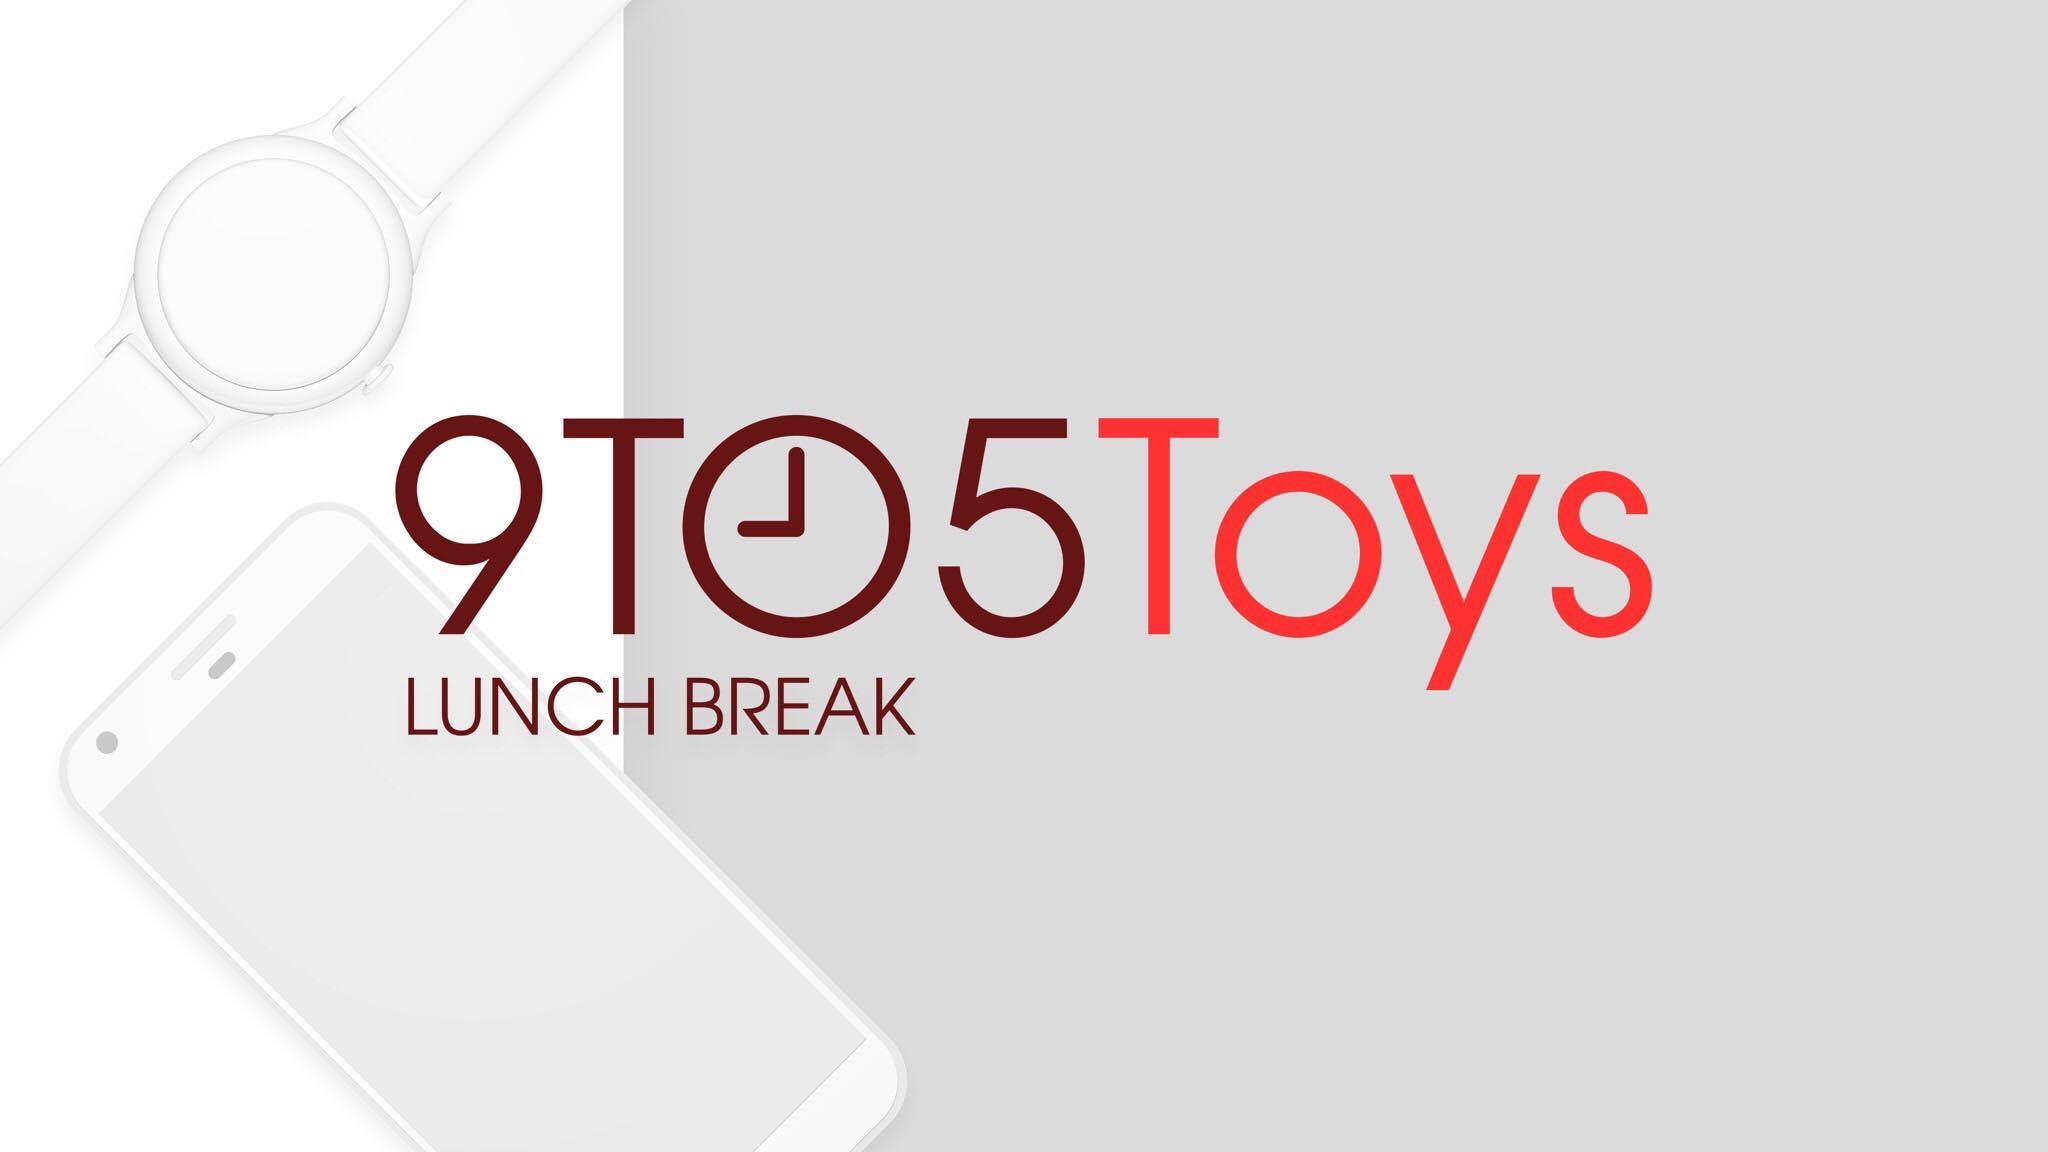 9to5toys lunch break amazon fire tv 4k 40 seagate 6tb hd 100 lg 5k ultrafine display 650 more